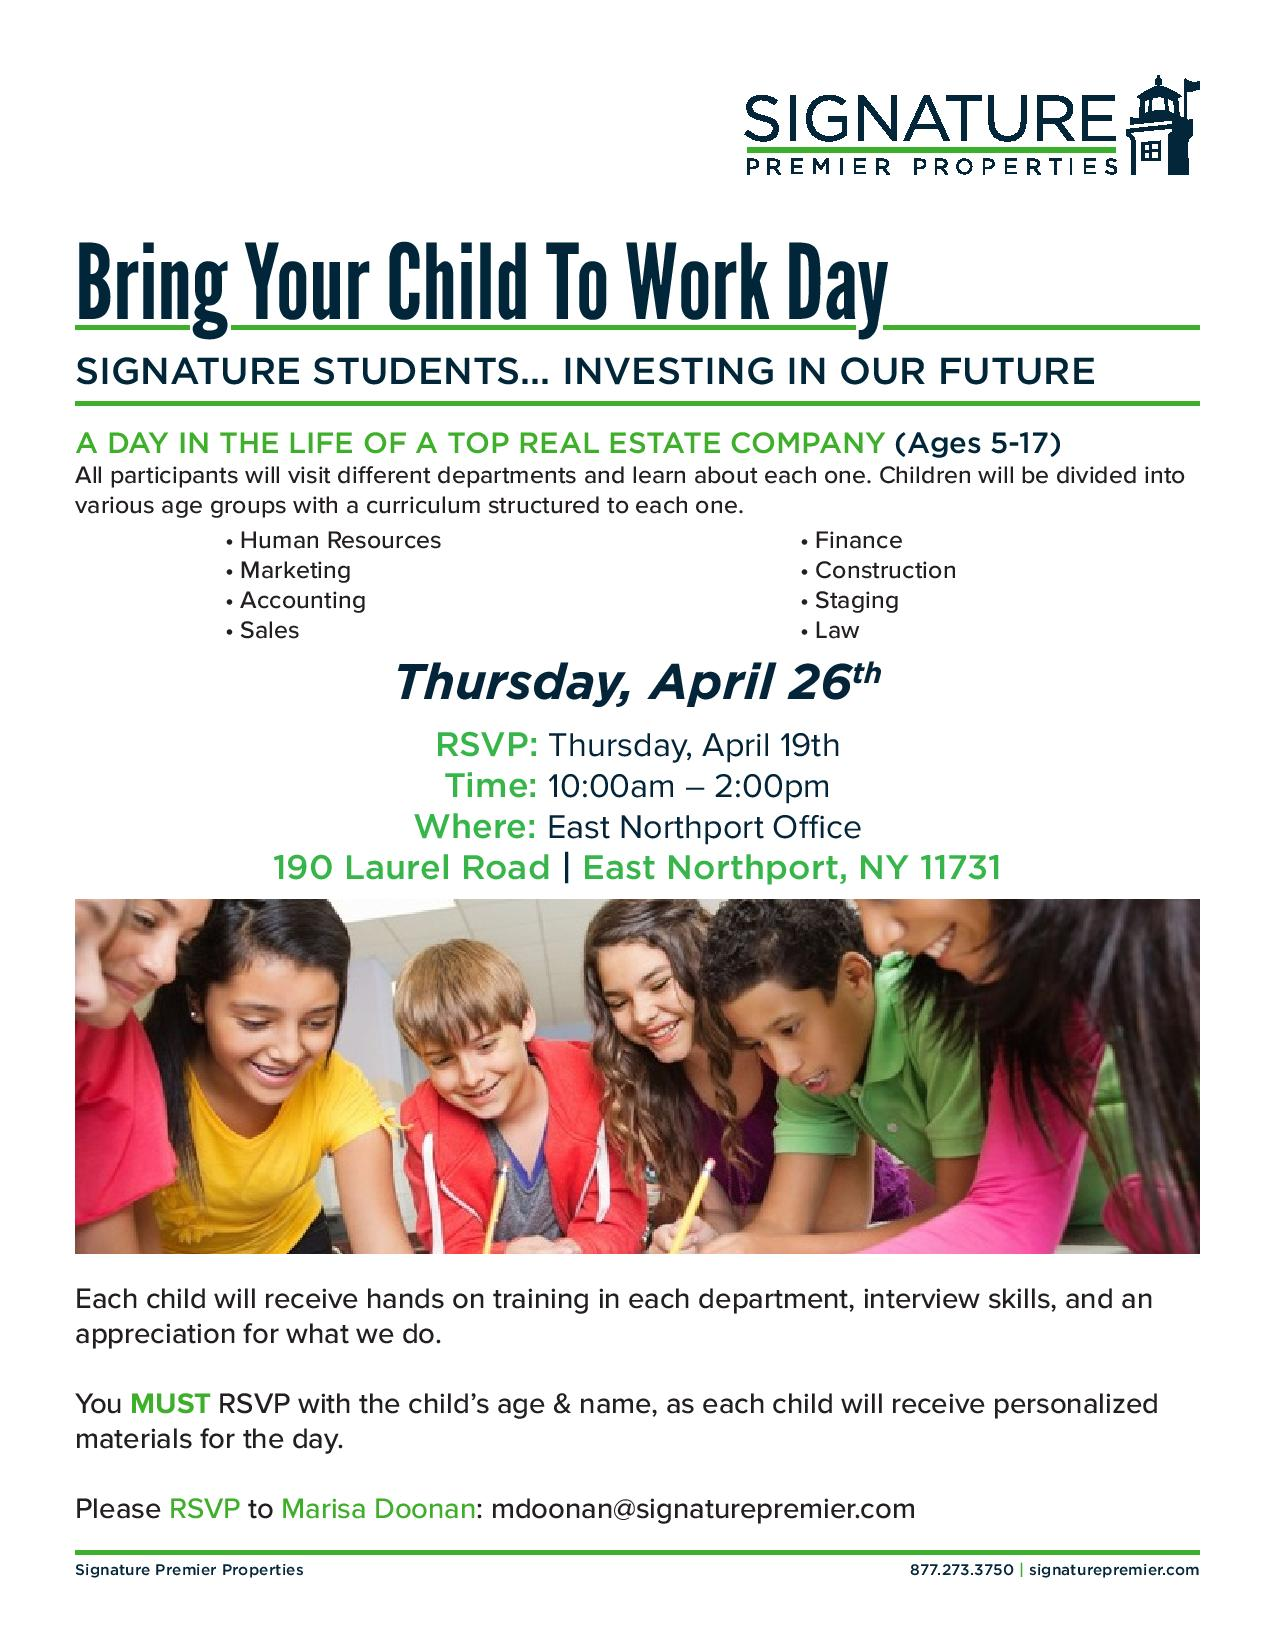 2018 Bring Your Child To Work Day | Signature Premier